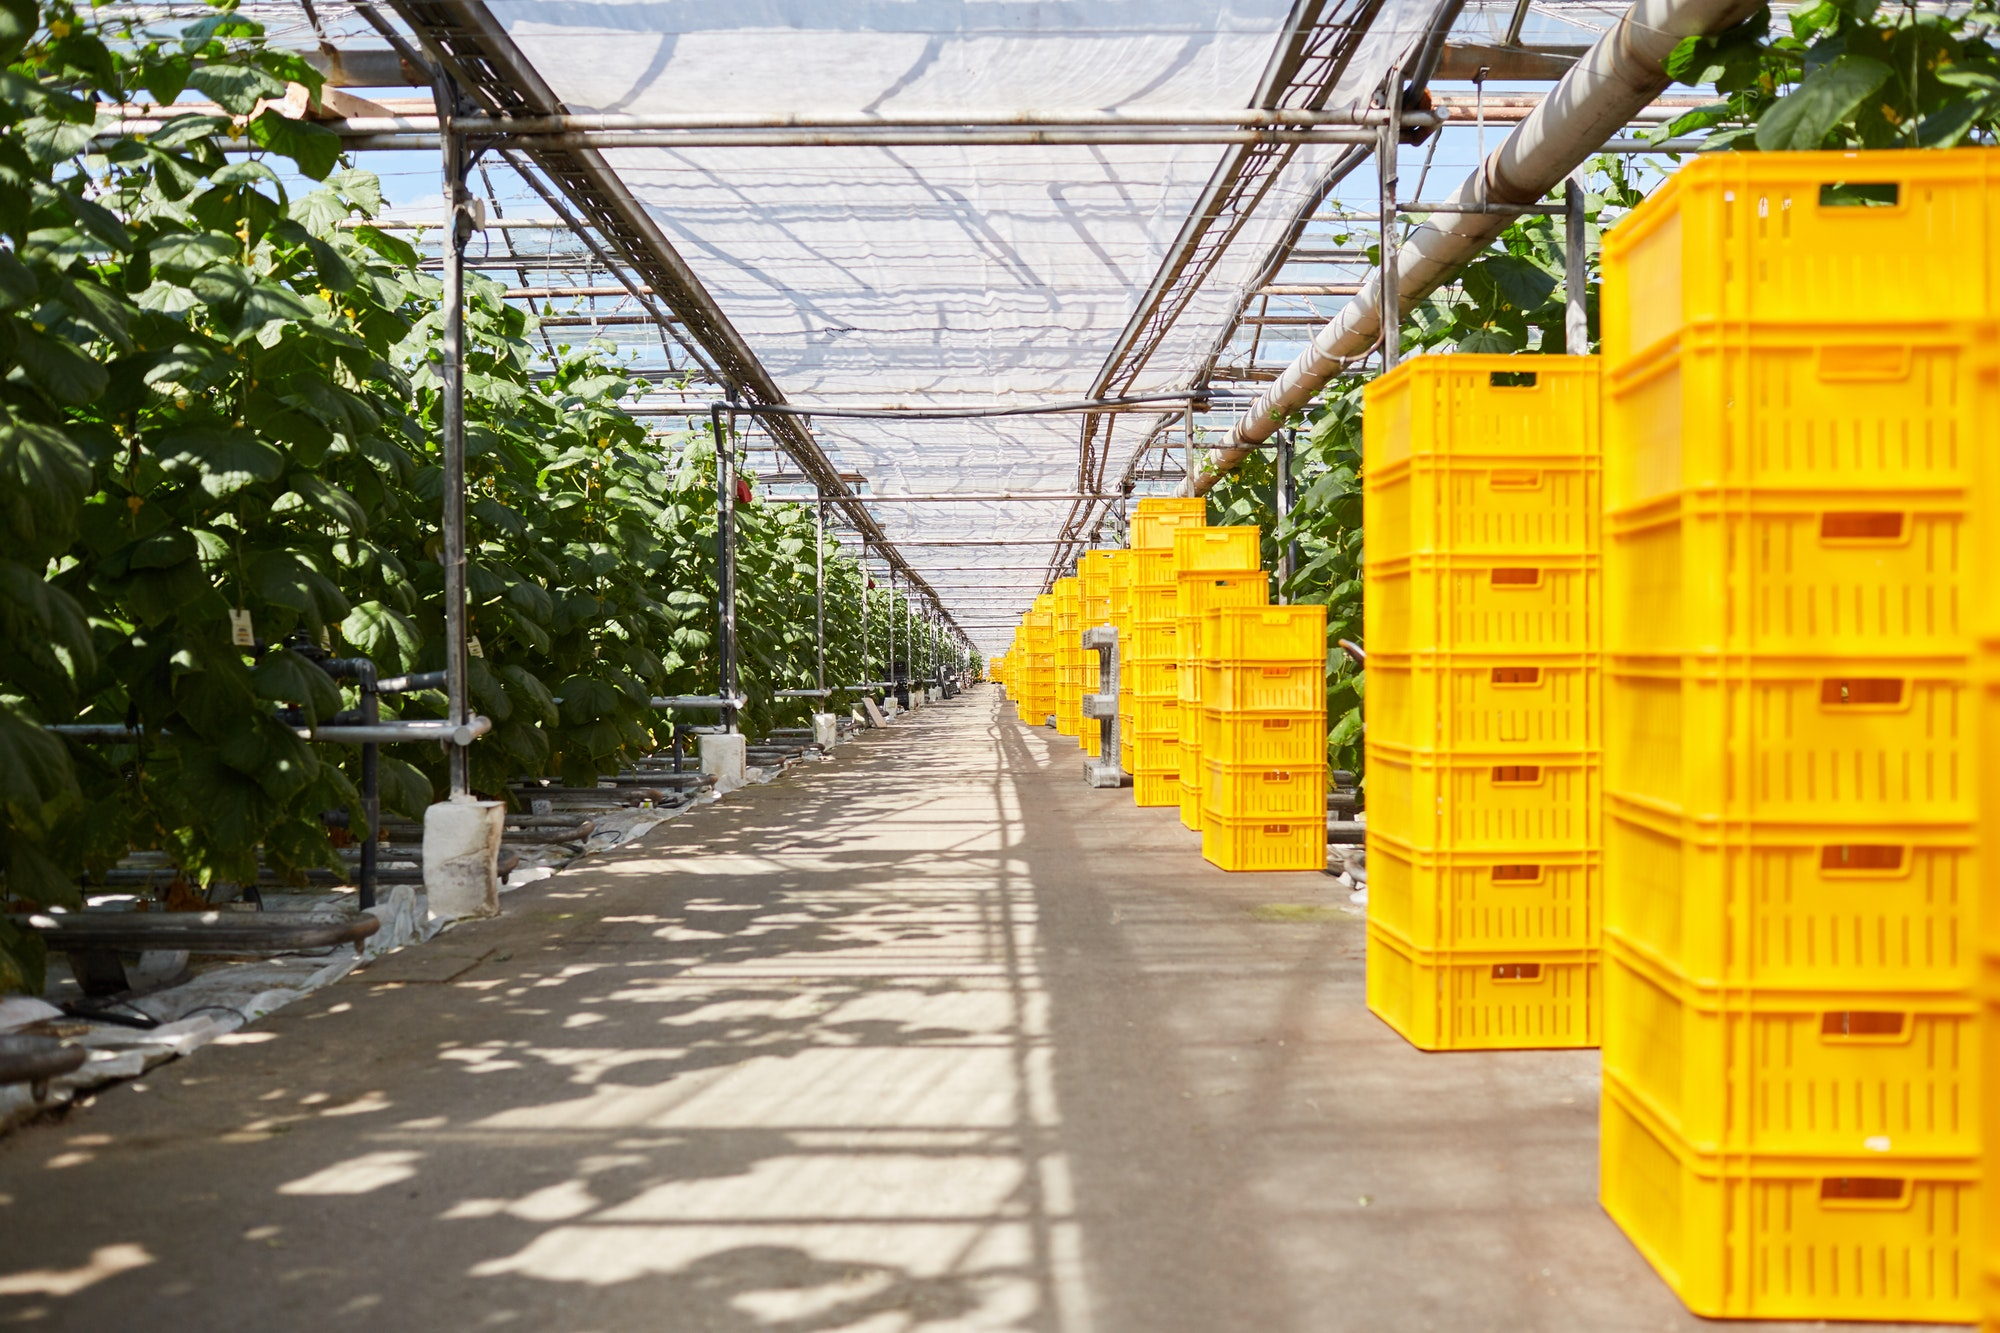 Harvested crops in greenhouse